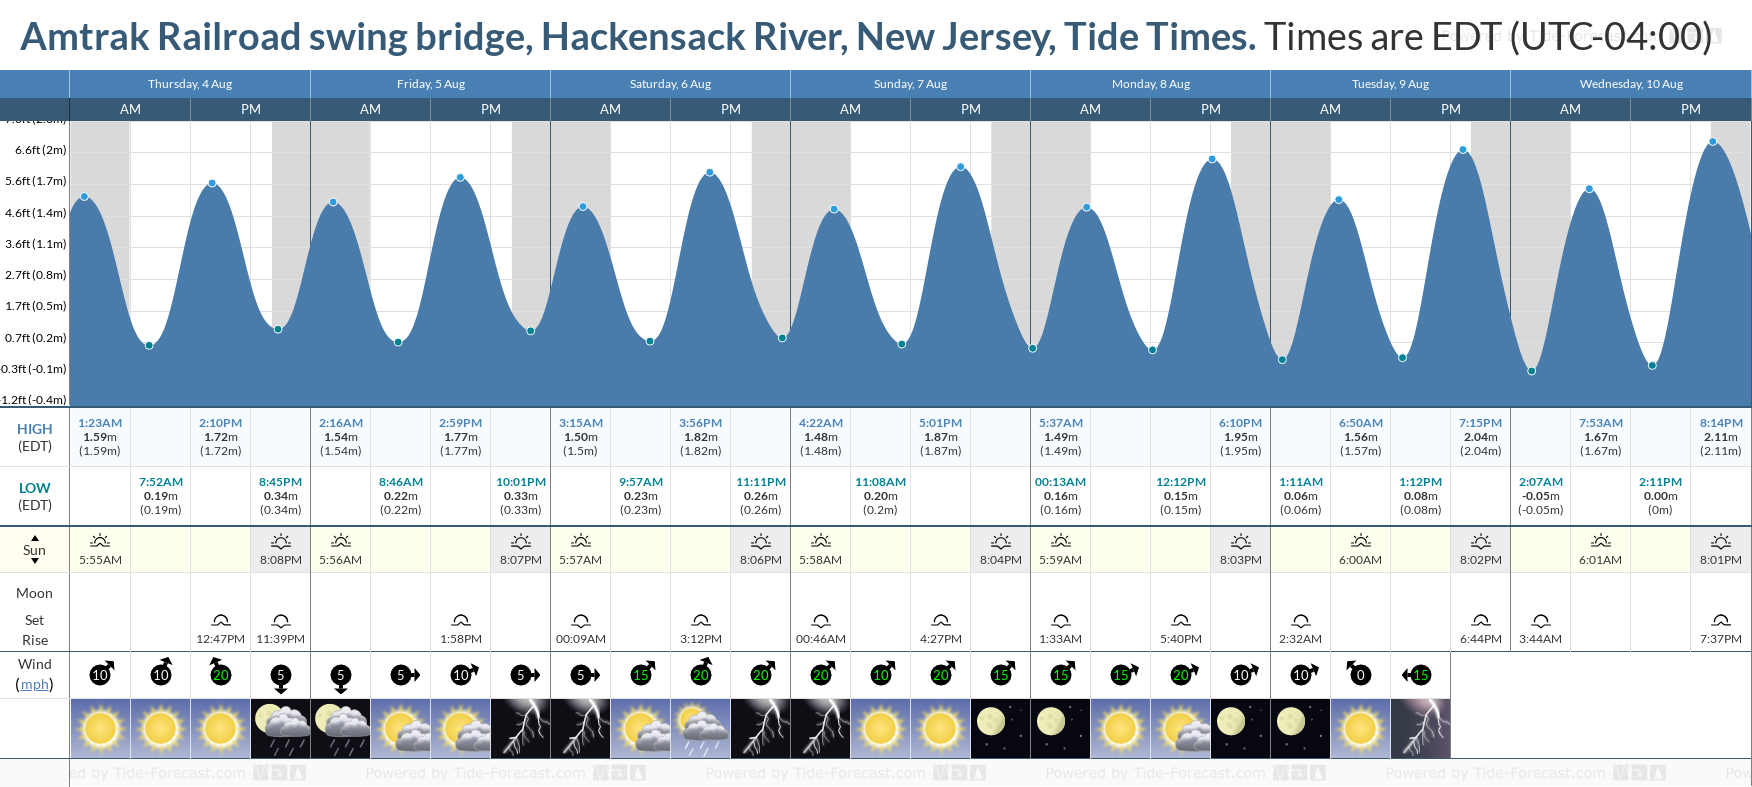 Amtrak Railroad swing bridge, Hackensack River, New Jersey Tide Chart including high and low tide tide times for the next 7 days